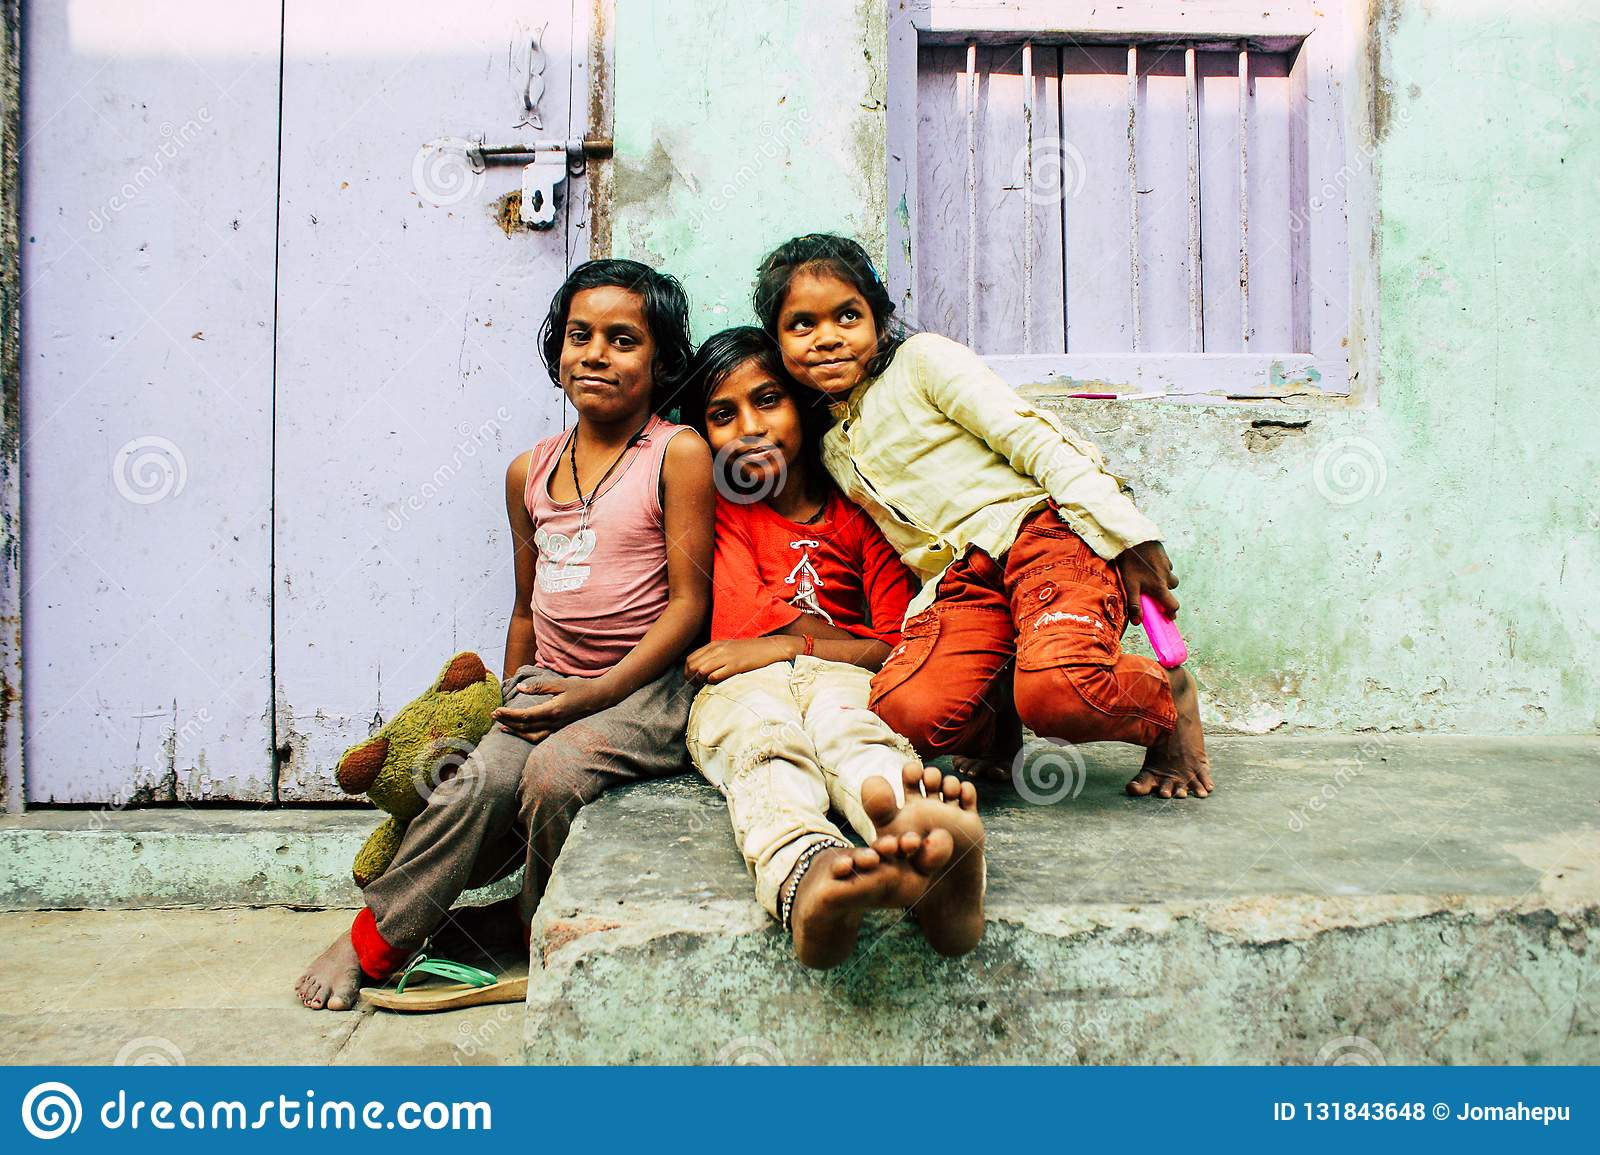 a1e96d8dfc Varanasi India November 11, 2018 Portrait of a young Indian girl having fun  in the streets of Varanasi in the afternoon